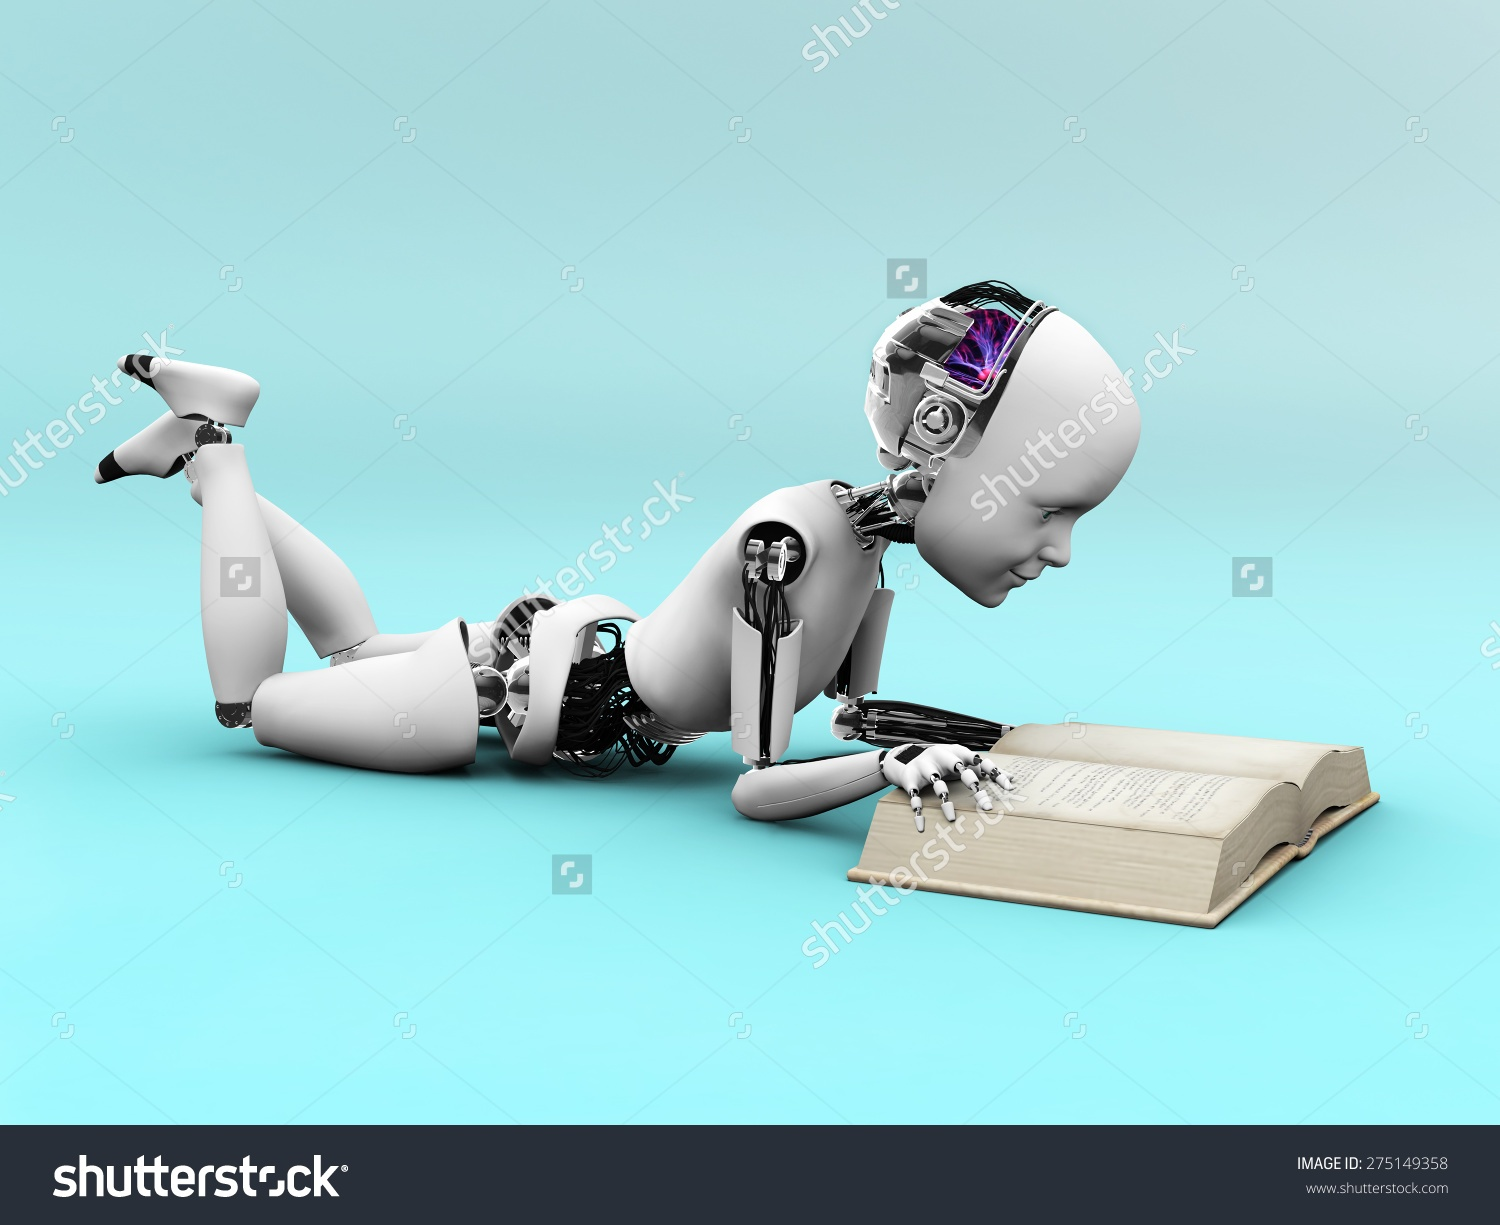 Robot child reading a book